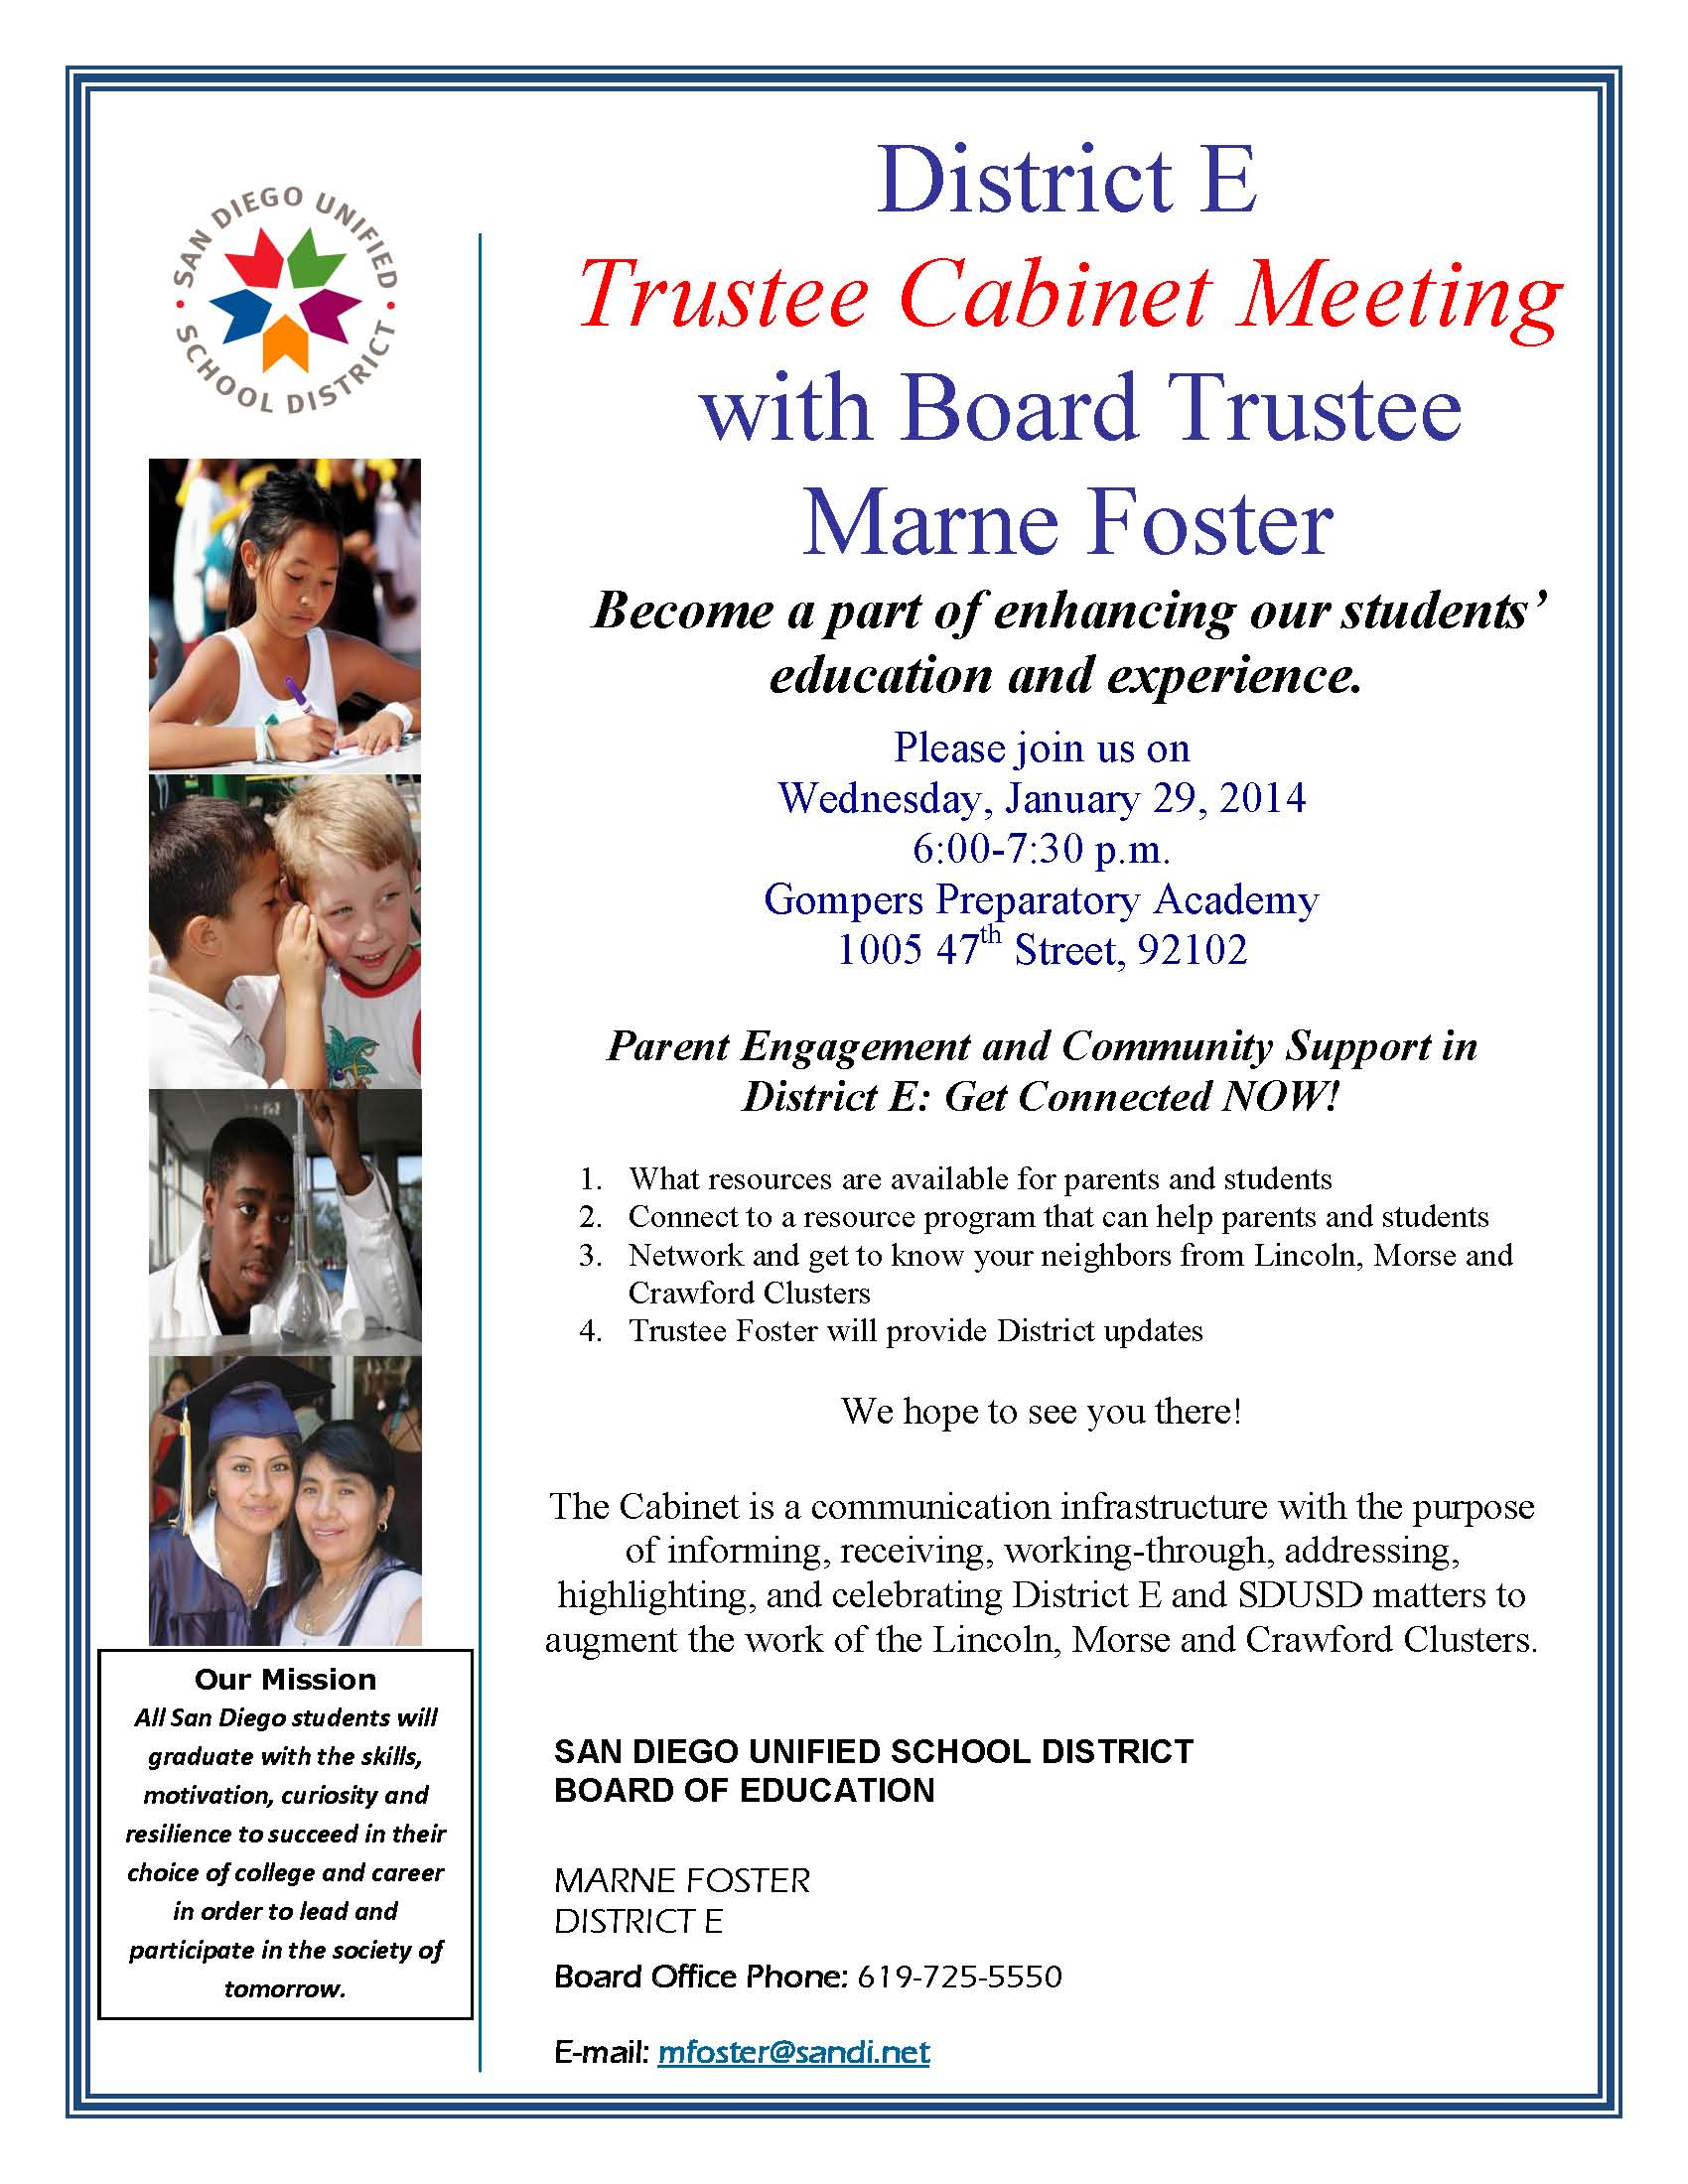 District E Cabinet Mtg Invite, 1-29-14